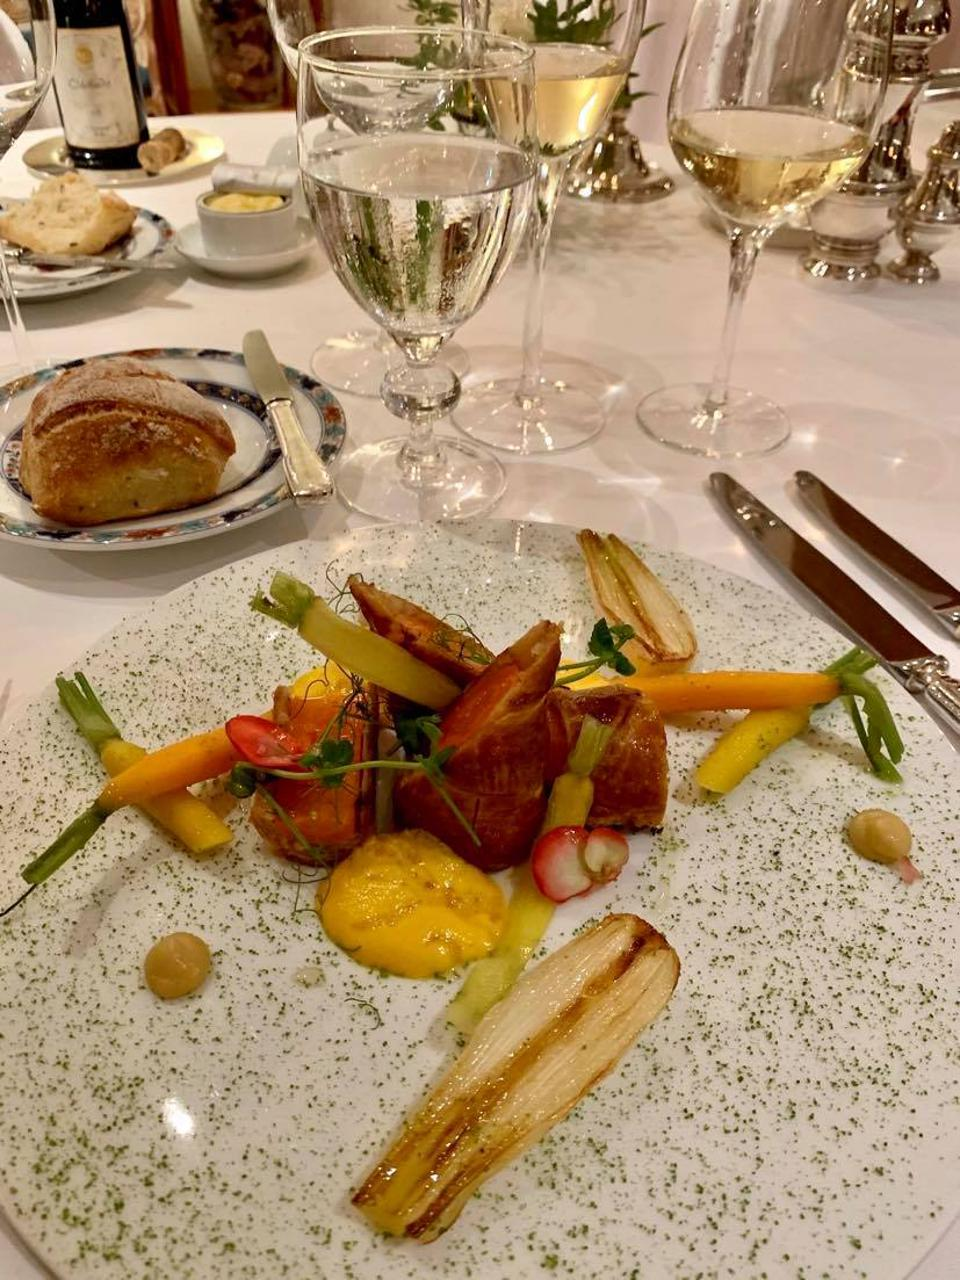 Carrots get the star treatment in a dish at Les Hauts de Loire hotel in the Loire Valley